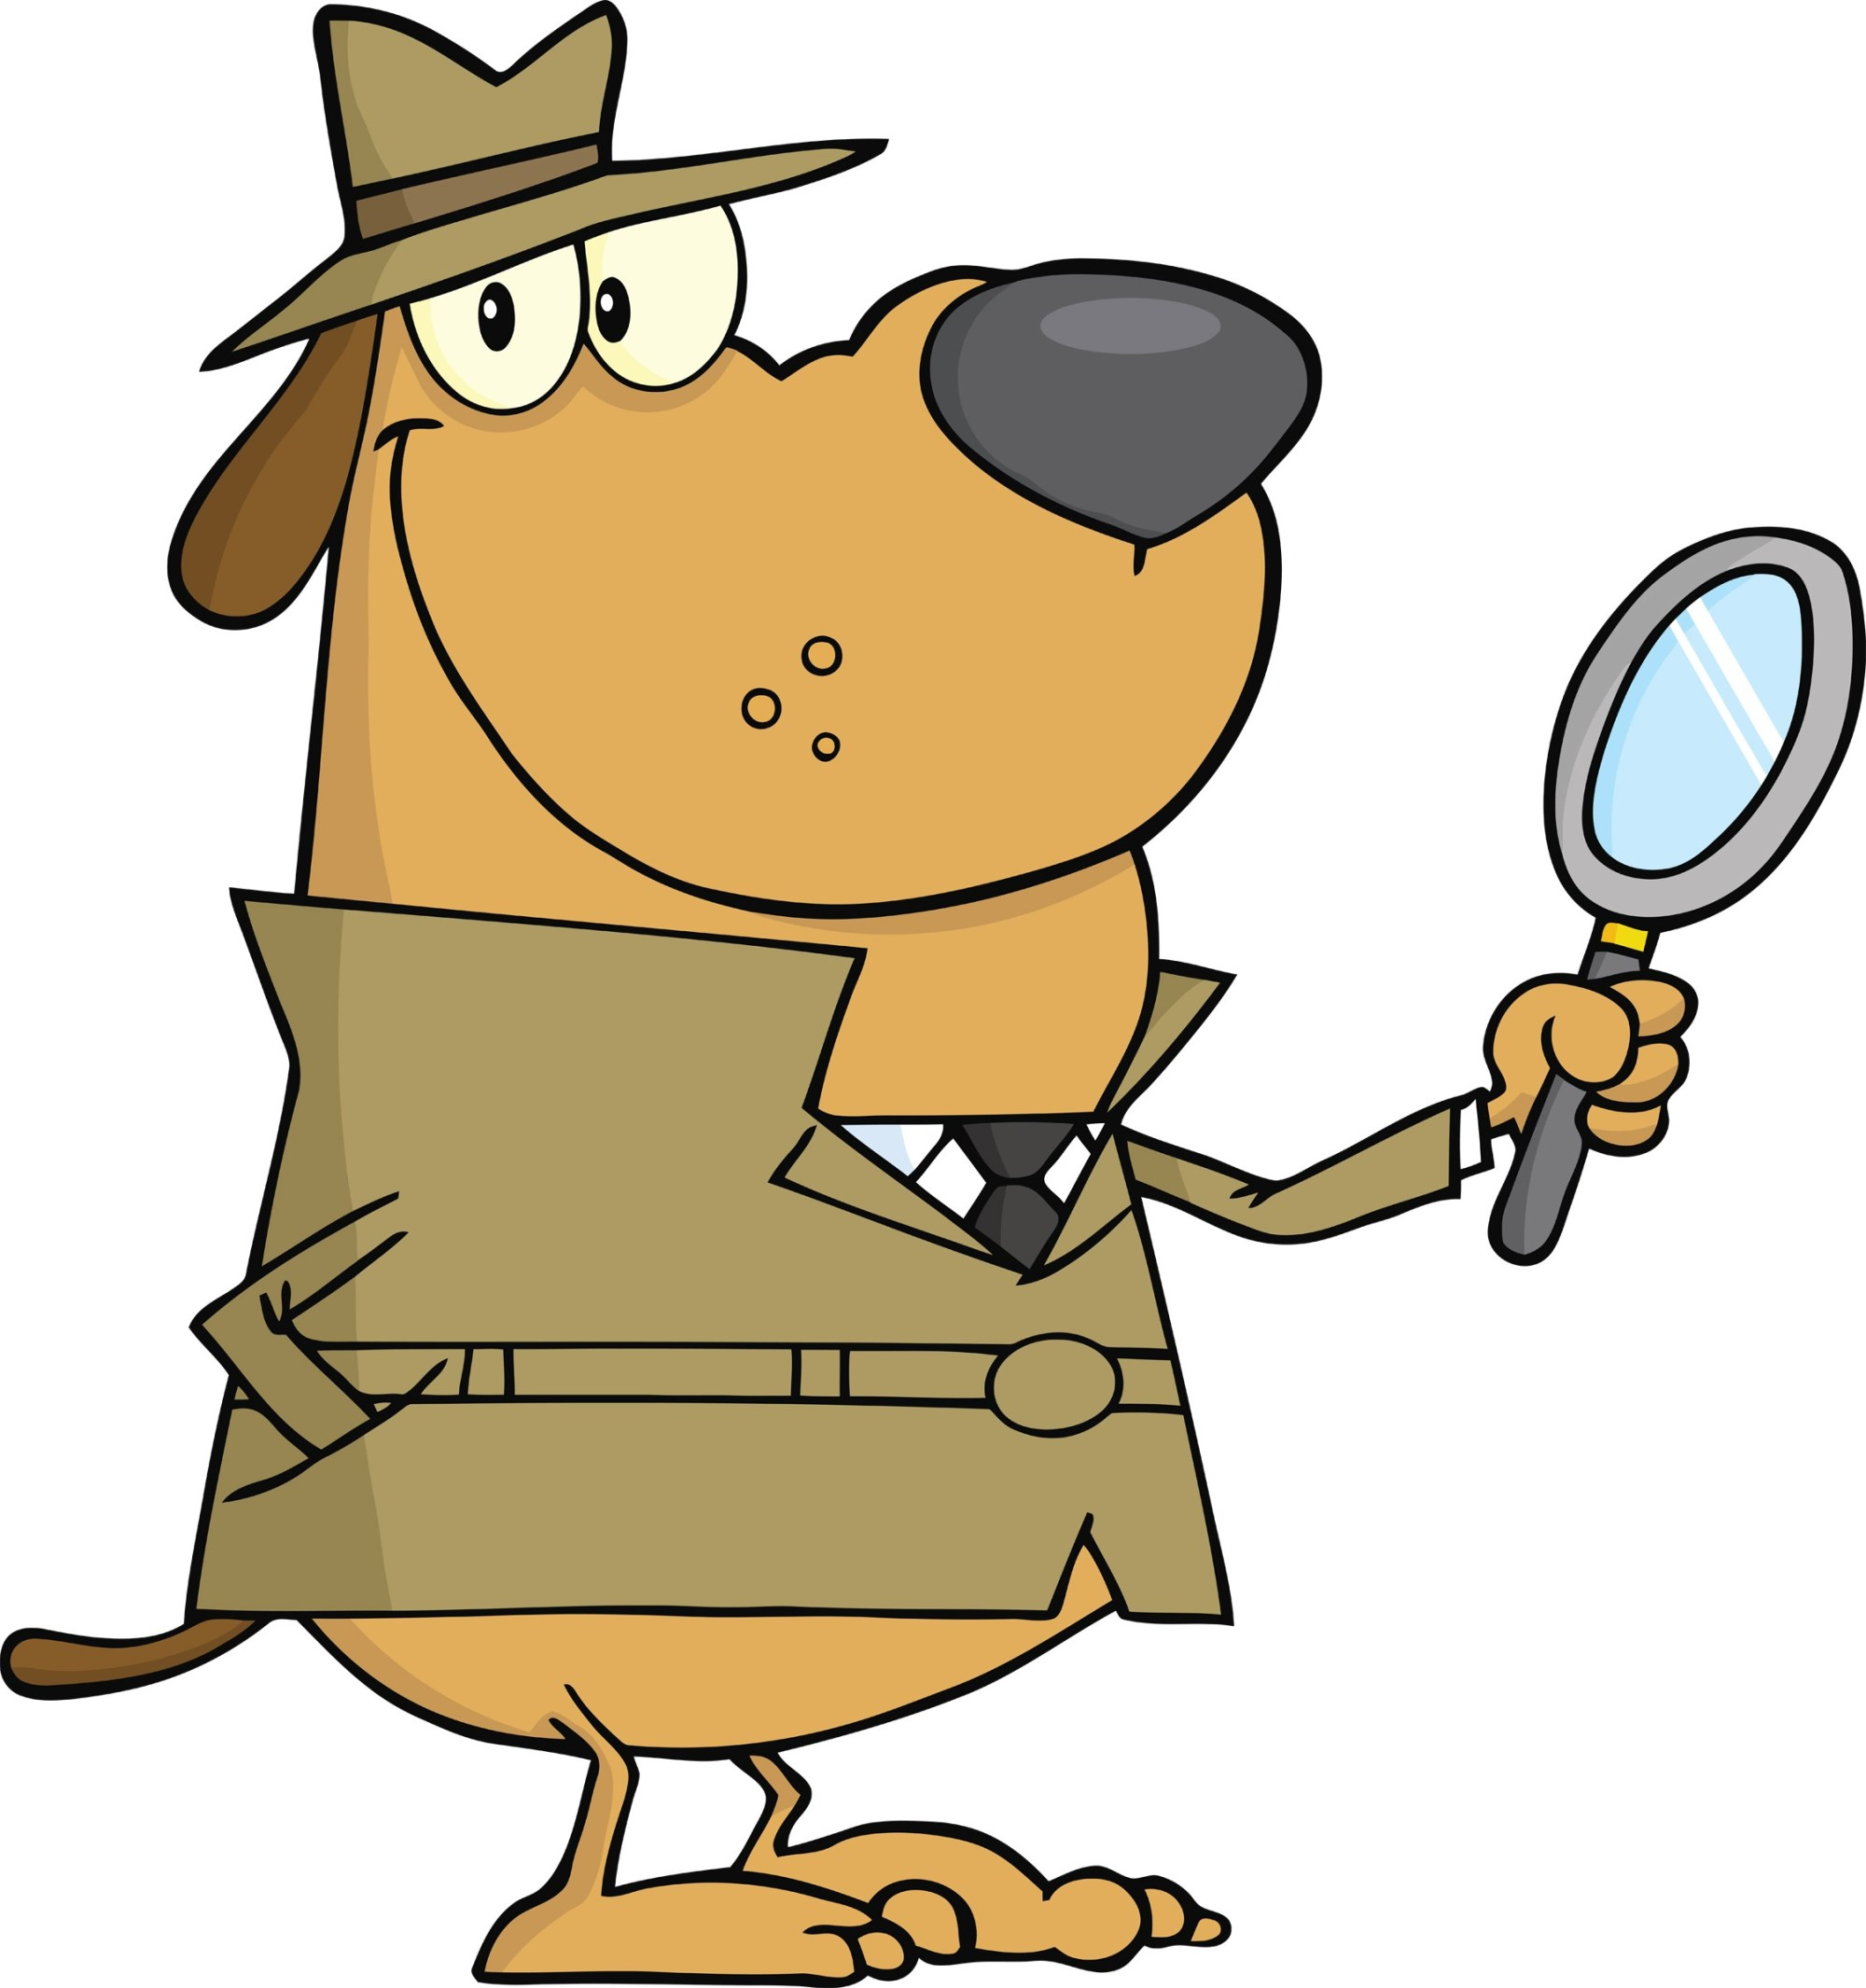 hight resolution of 2252x2400 detective clipart cat dog